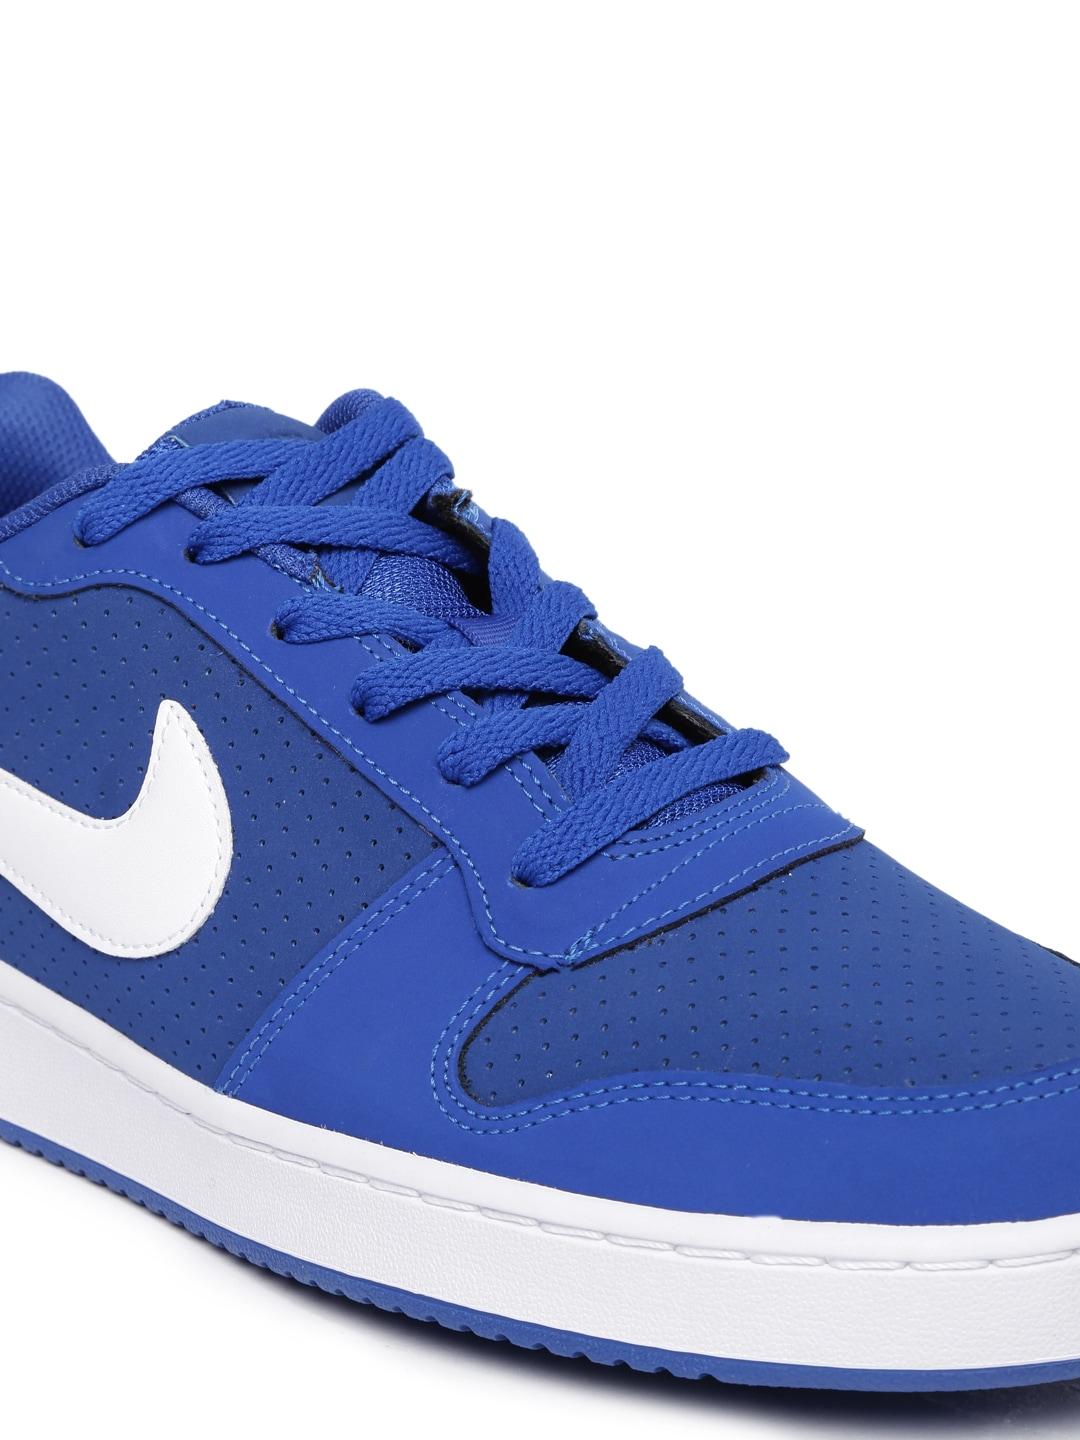 men nike blue sneakers